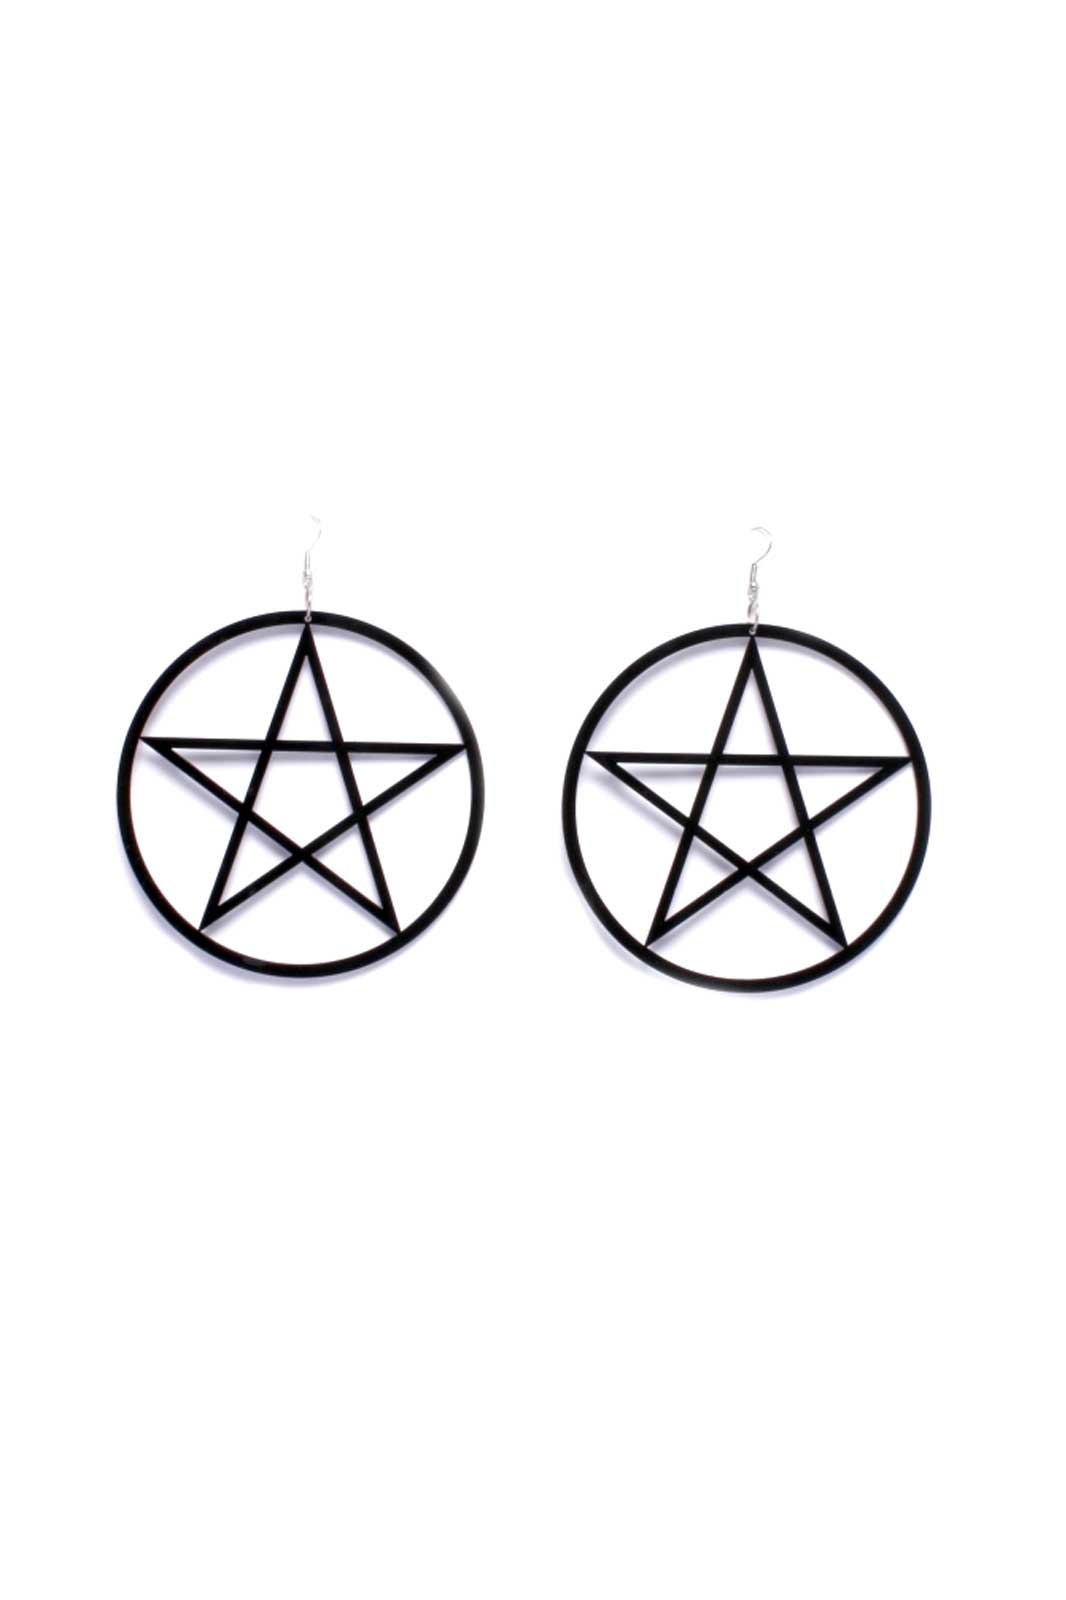 Earrings Black Pentagram